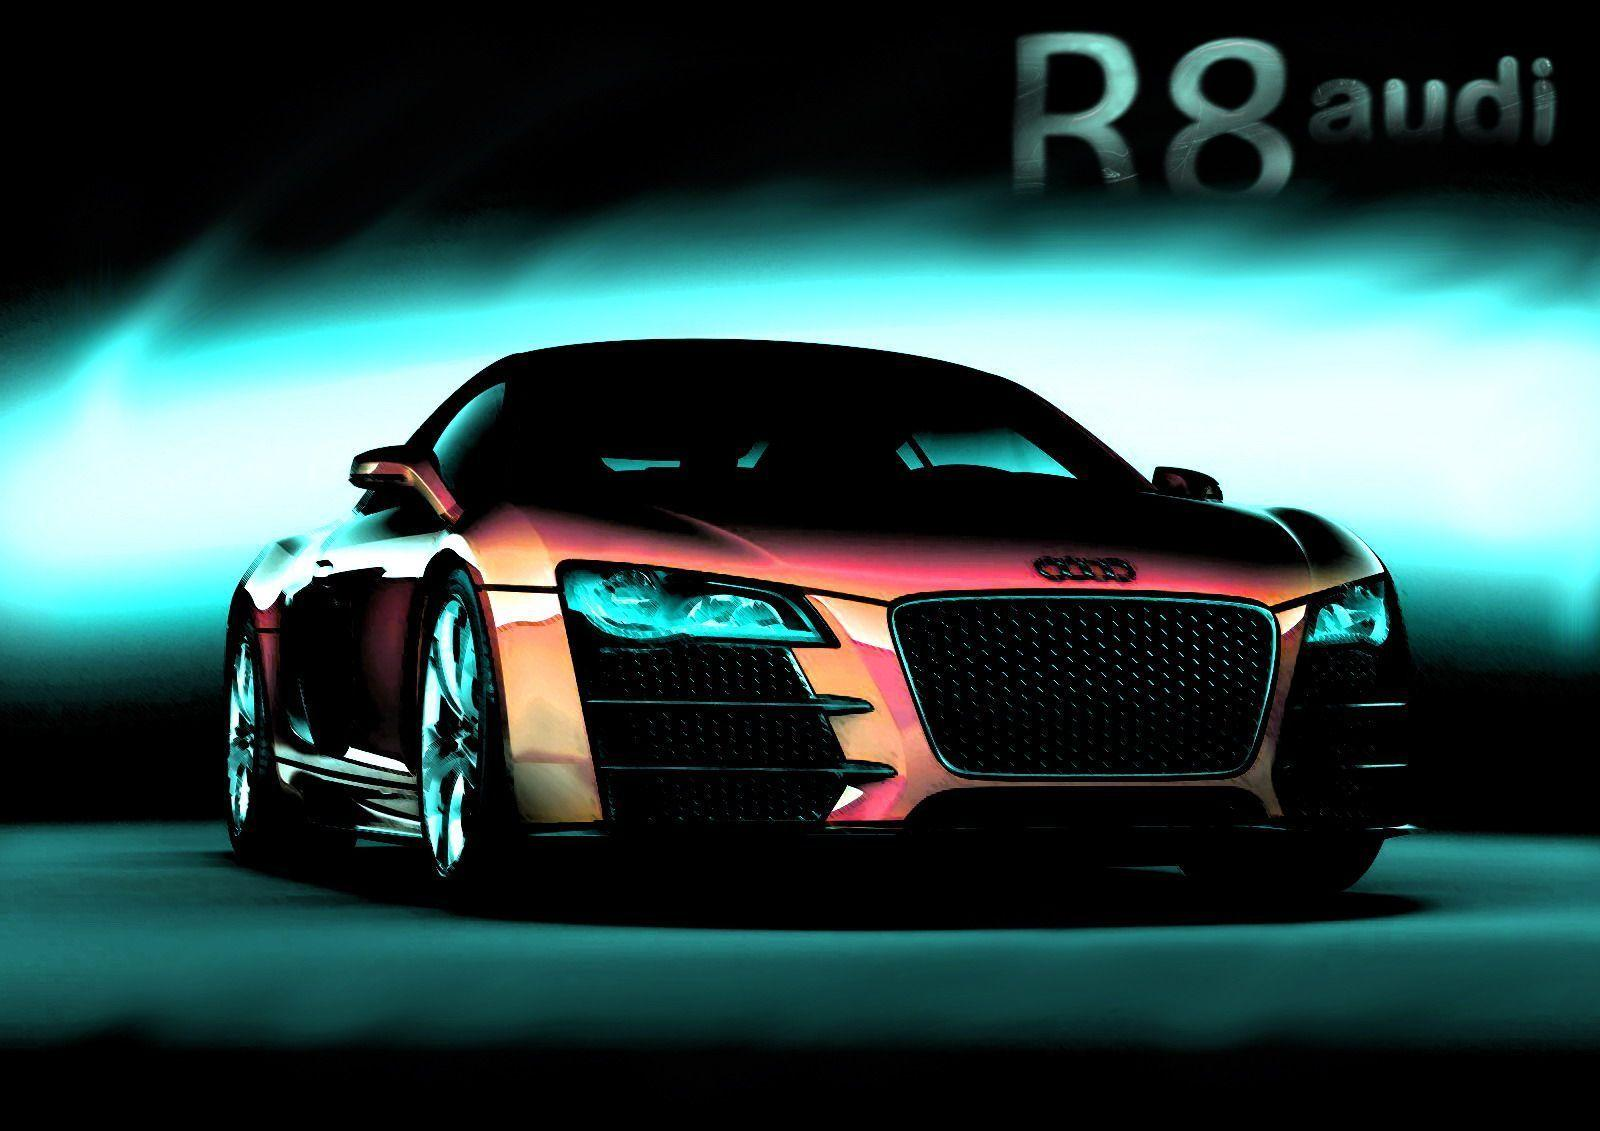 Audi R8 Cars Wallpapers For Widescreen & Desktop Backgrounds